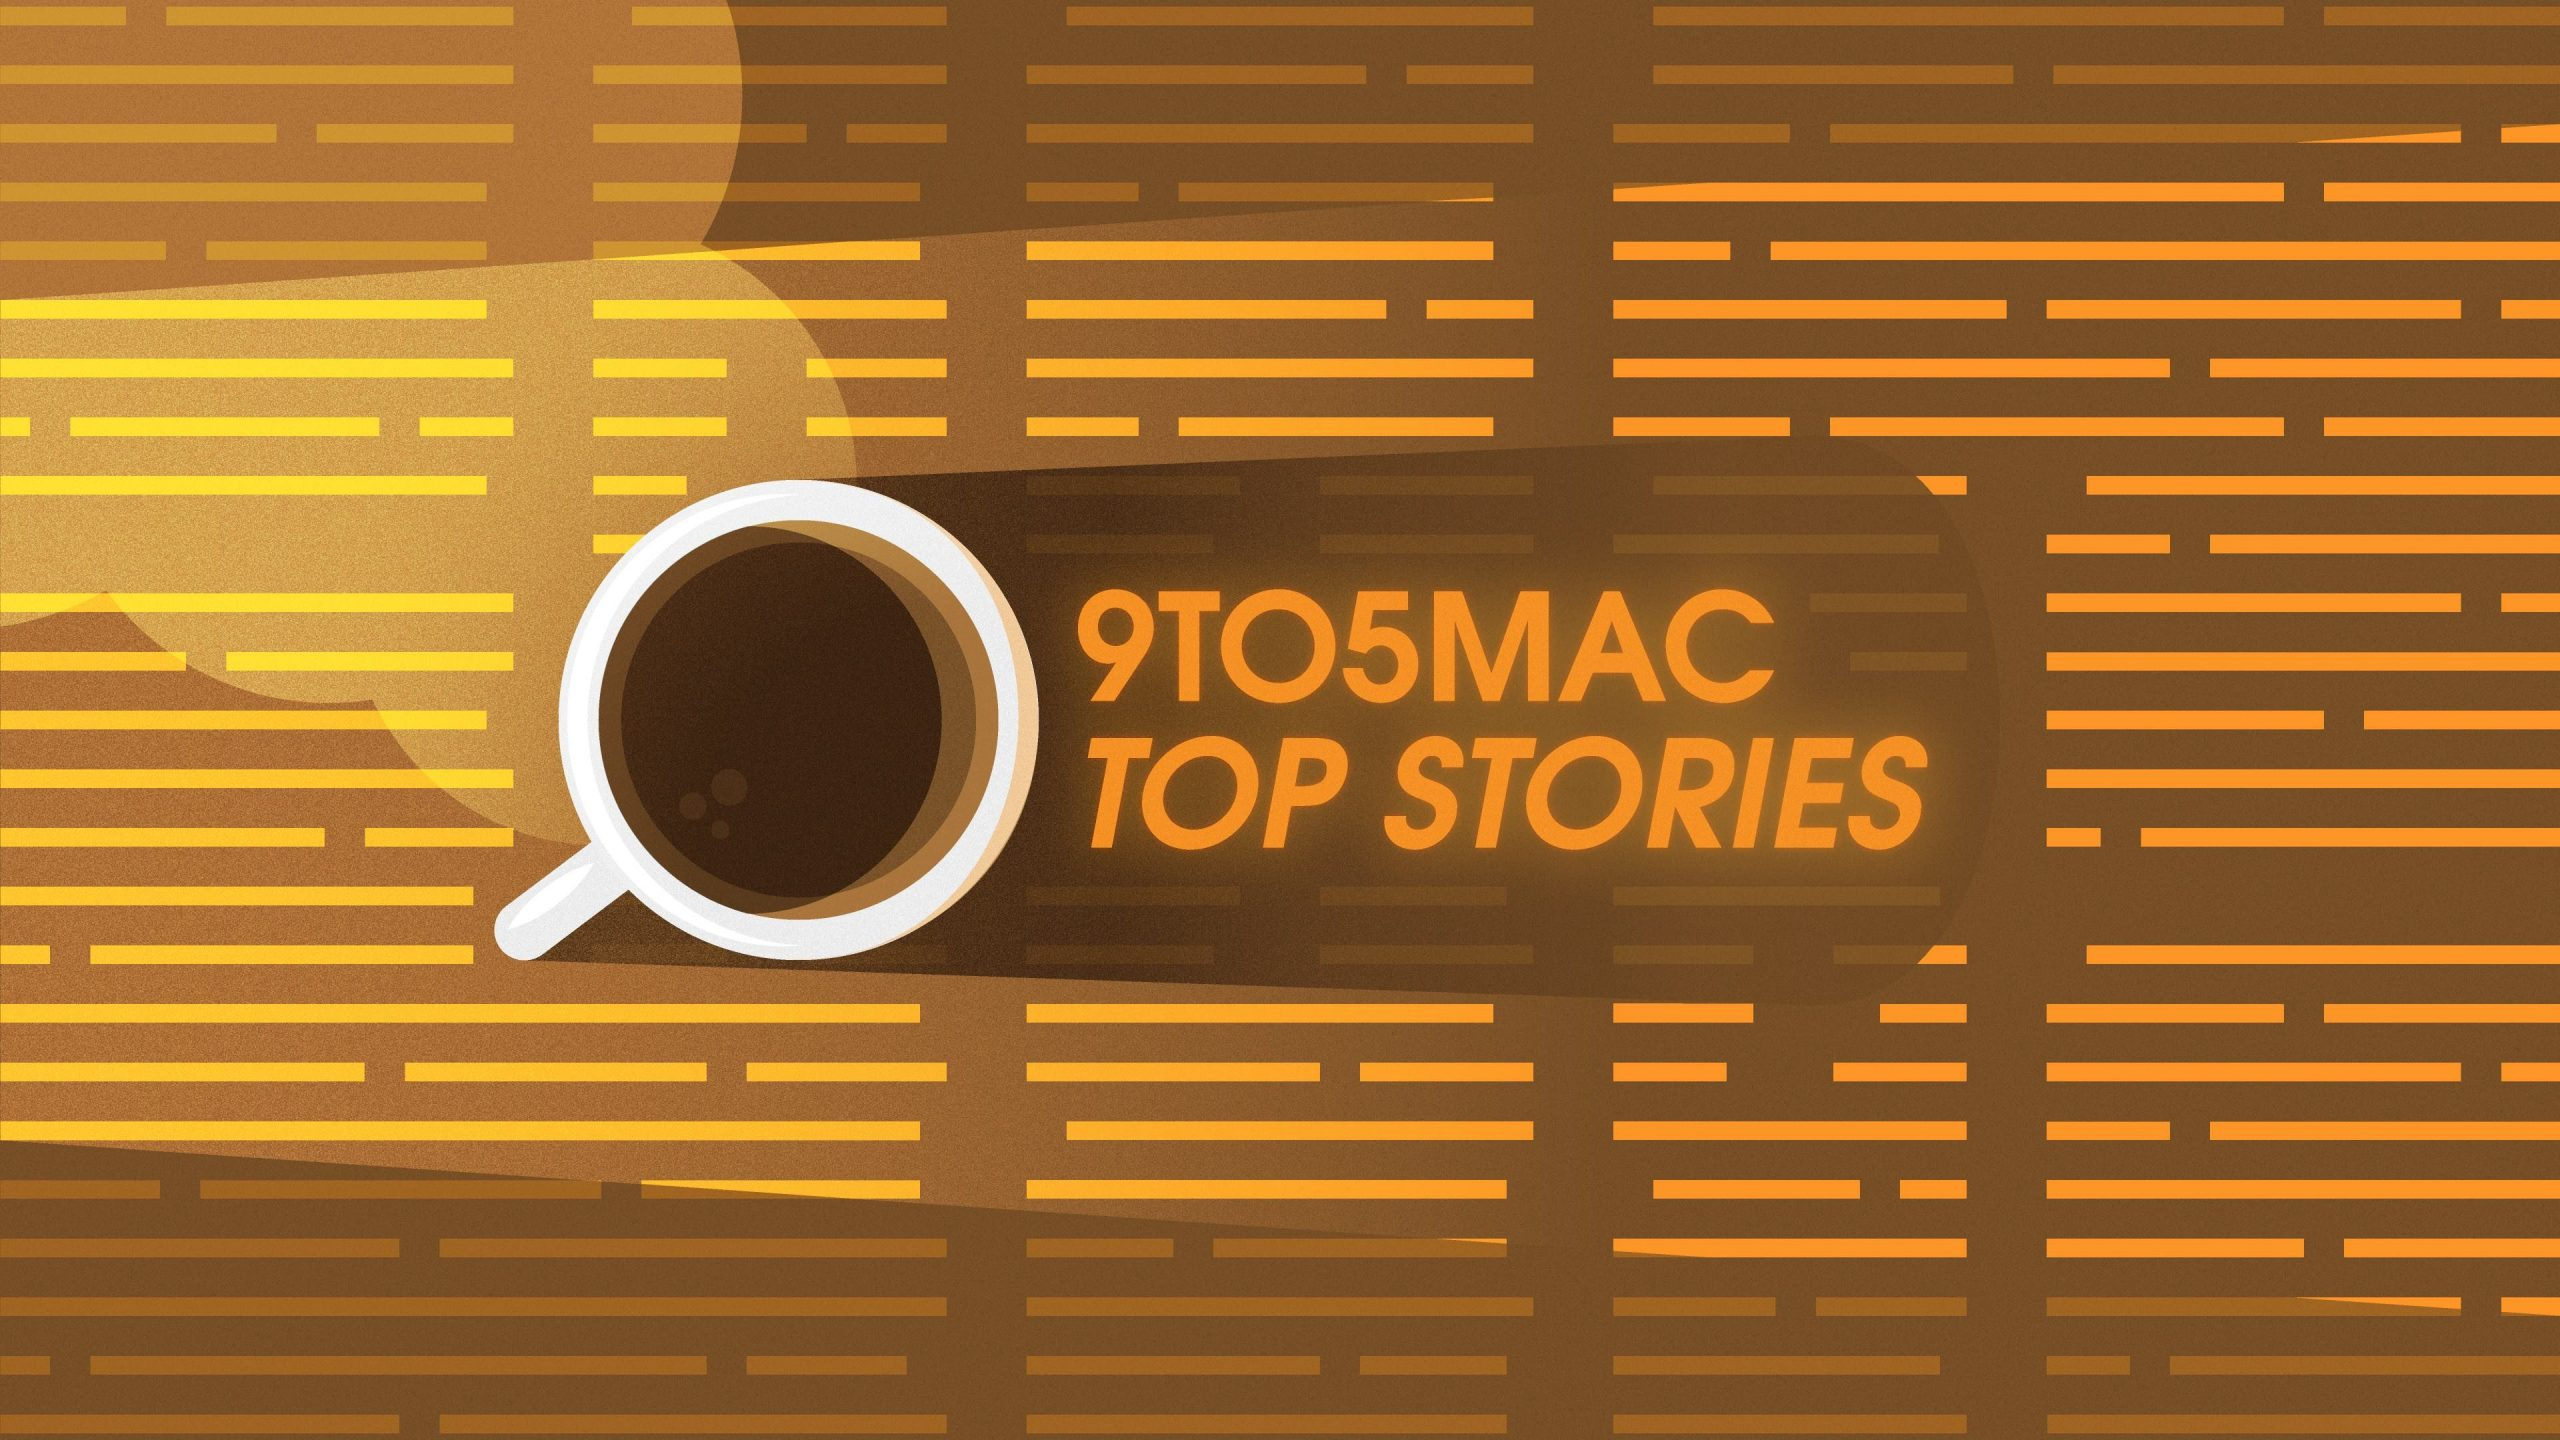 This week's top stories: Secret iPod Geiger counter, new iPhone 12 dummy images, iOS 14 beta 5 released, more